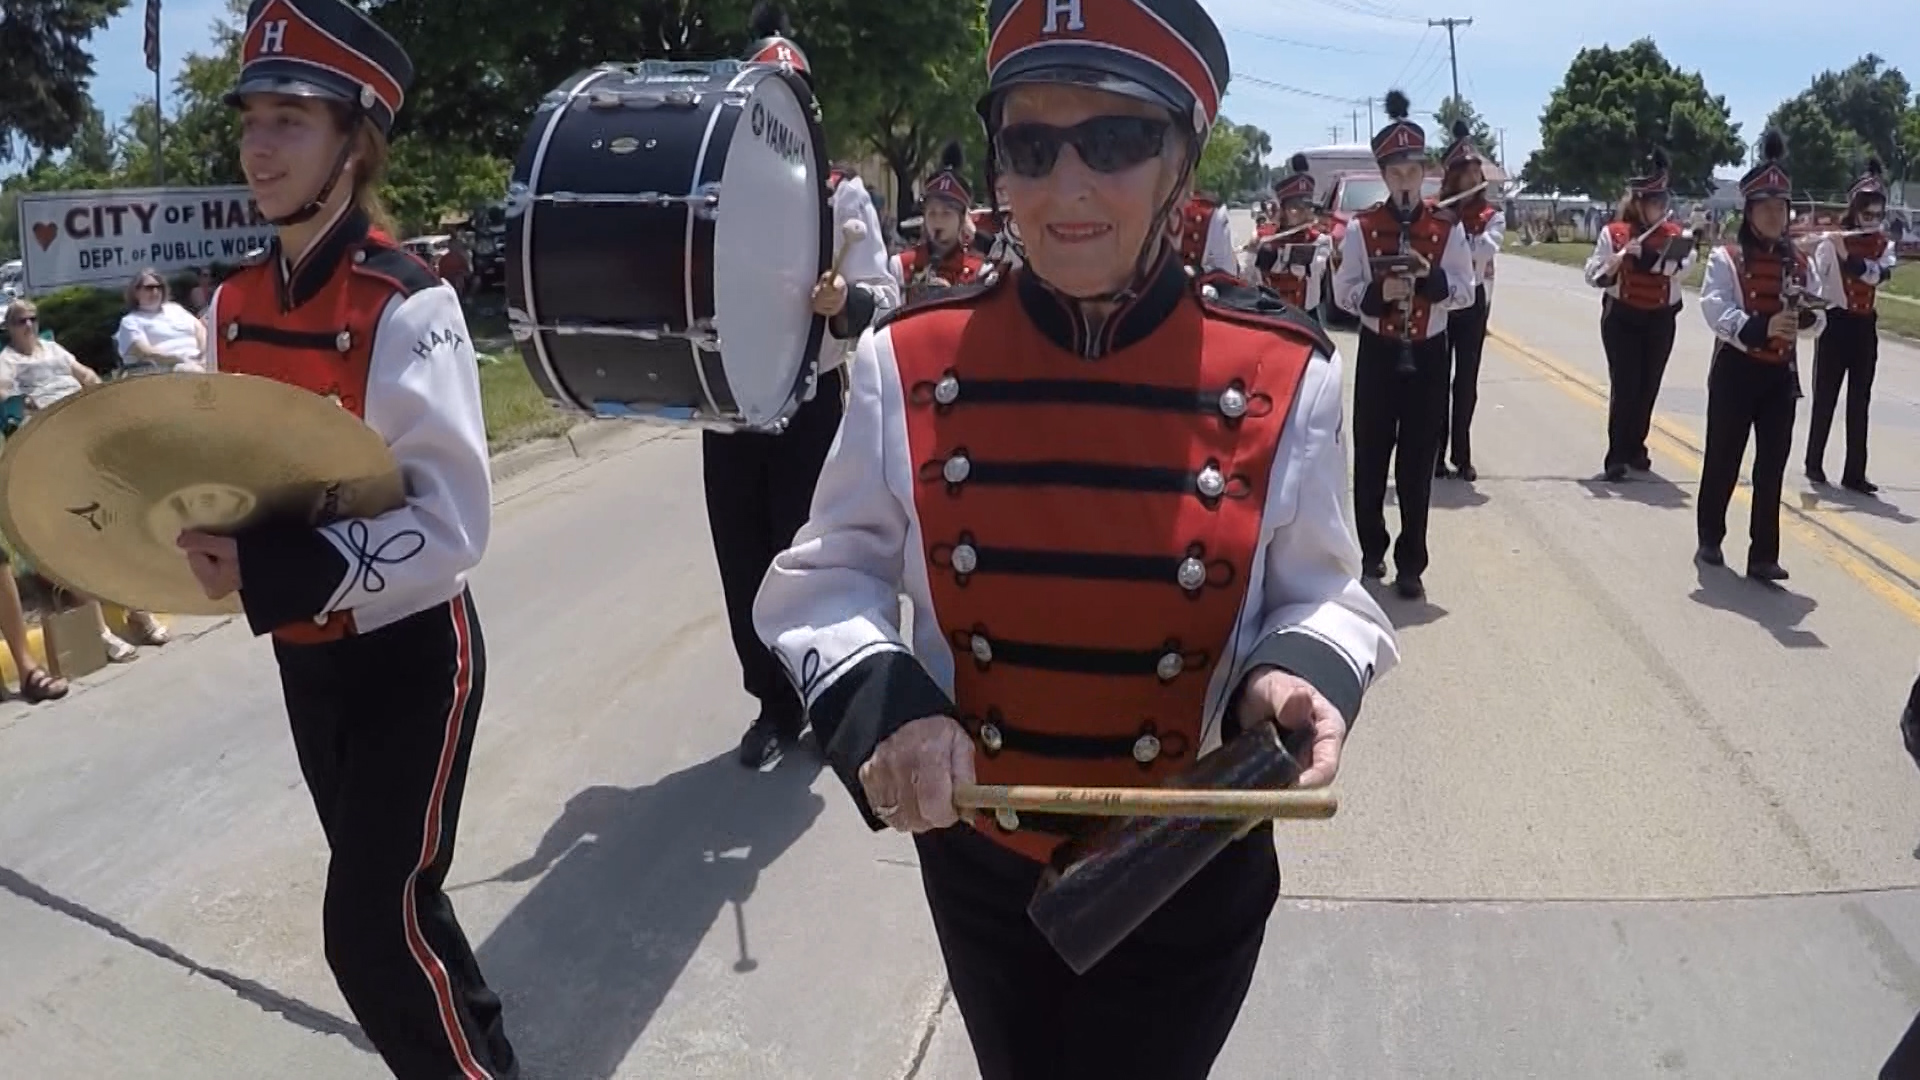 80-year-old plays in high school band one more time